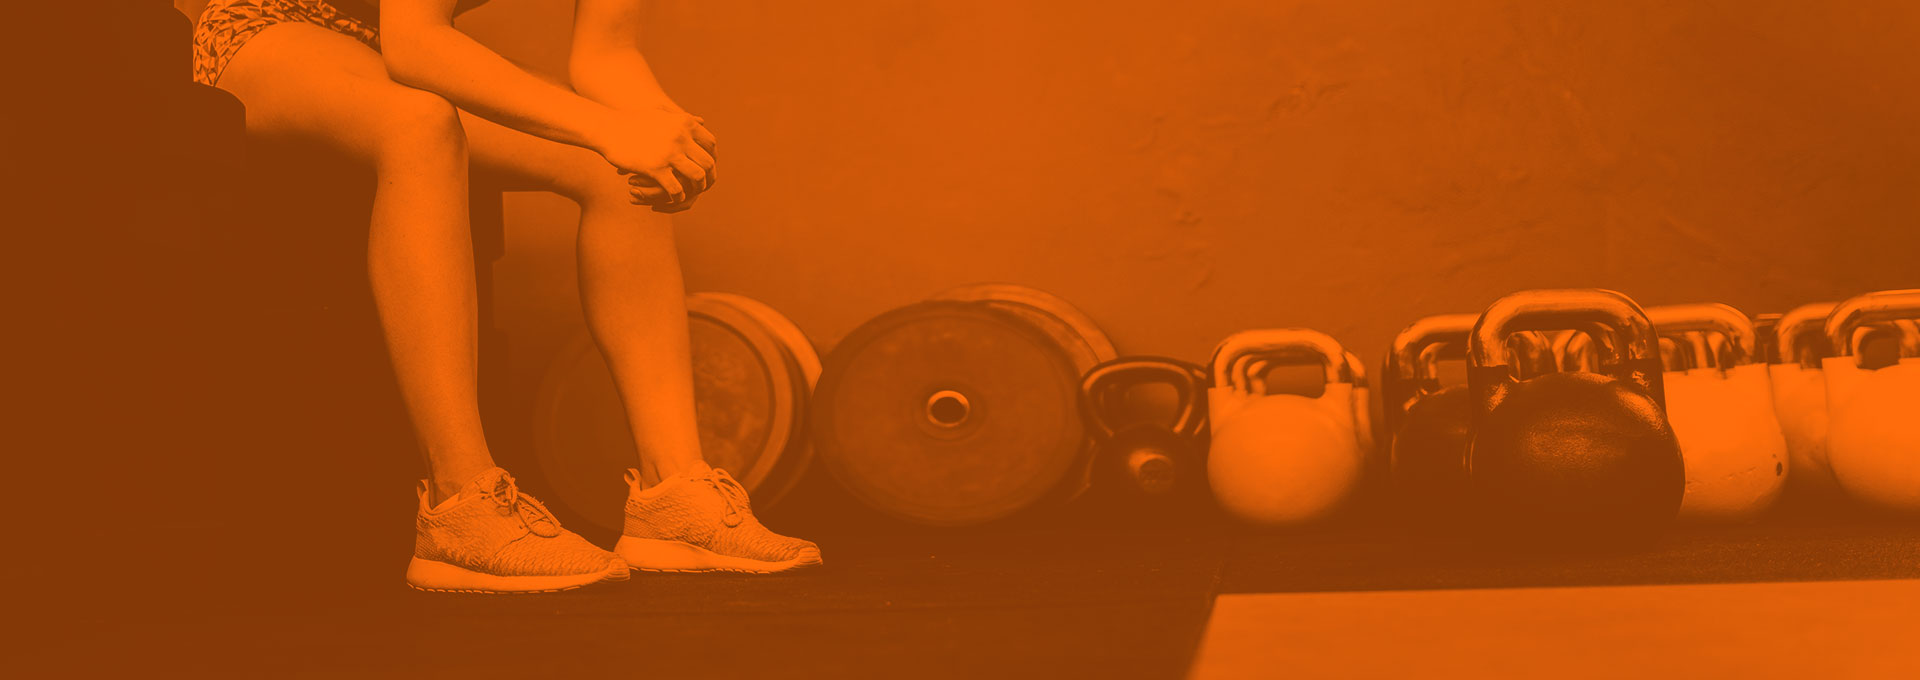 Sustainability Guide for Gyms and Fitness Centers: Getting Started